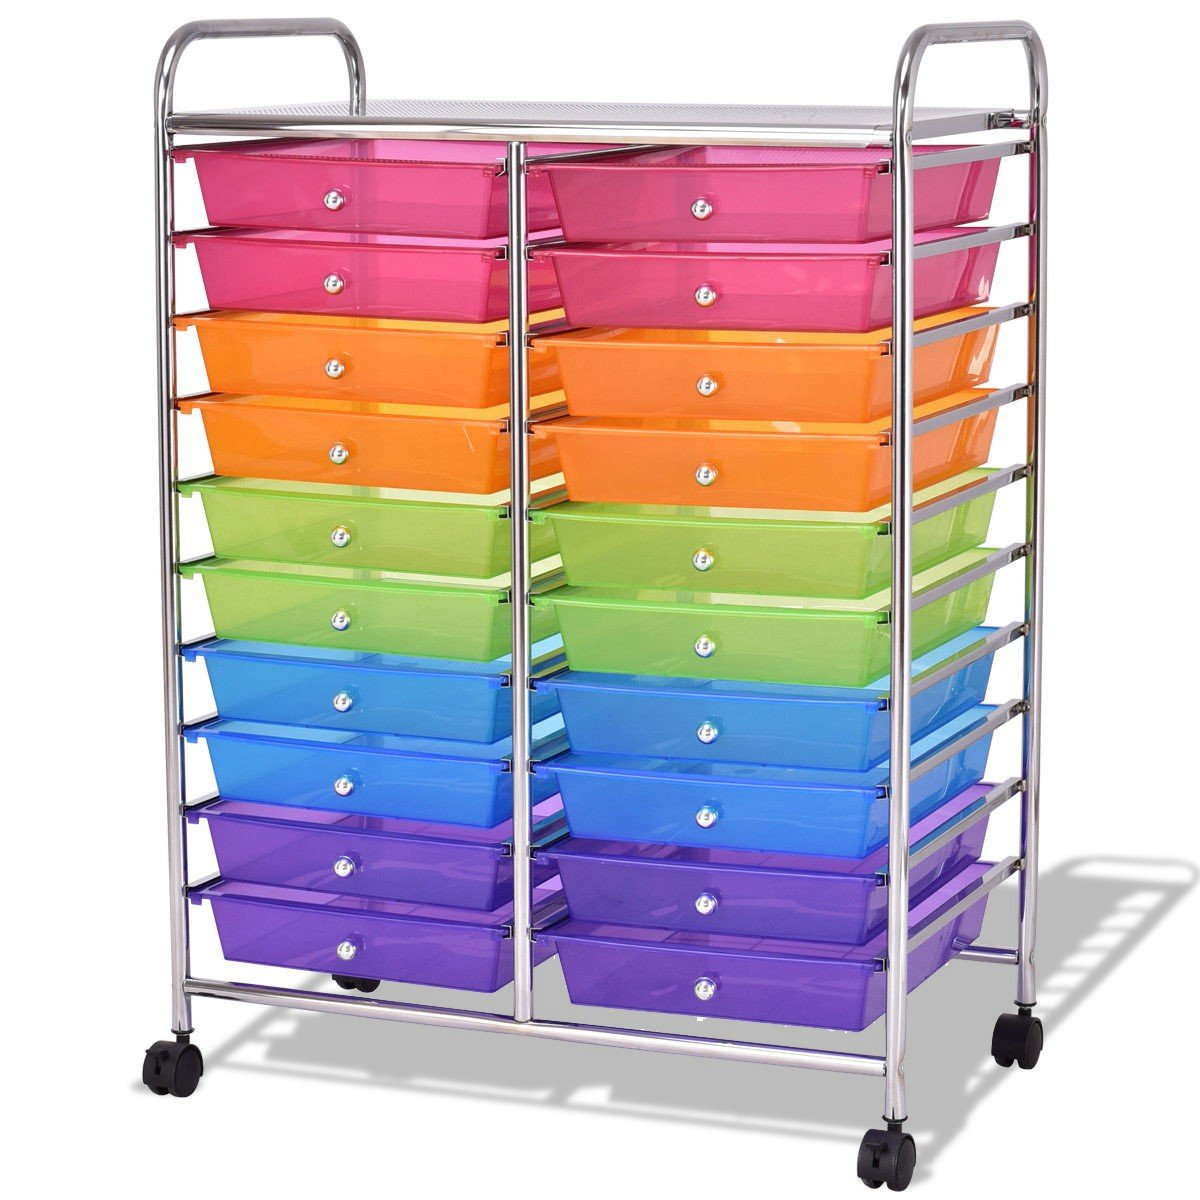 LordBee New Colorful 20 Drawers Studio Storage Rolling Cart Red, Orange, Green, Blue and Violet Organizer Home Office Dining Room Decorative